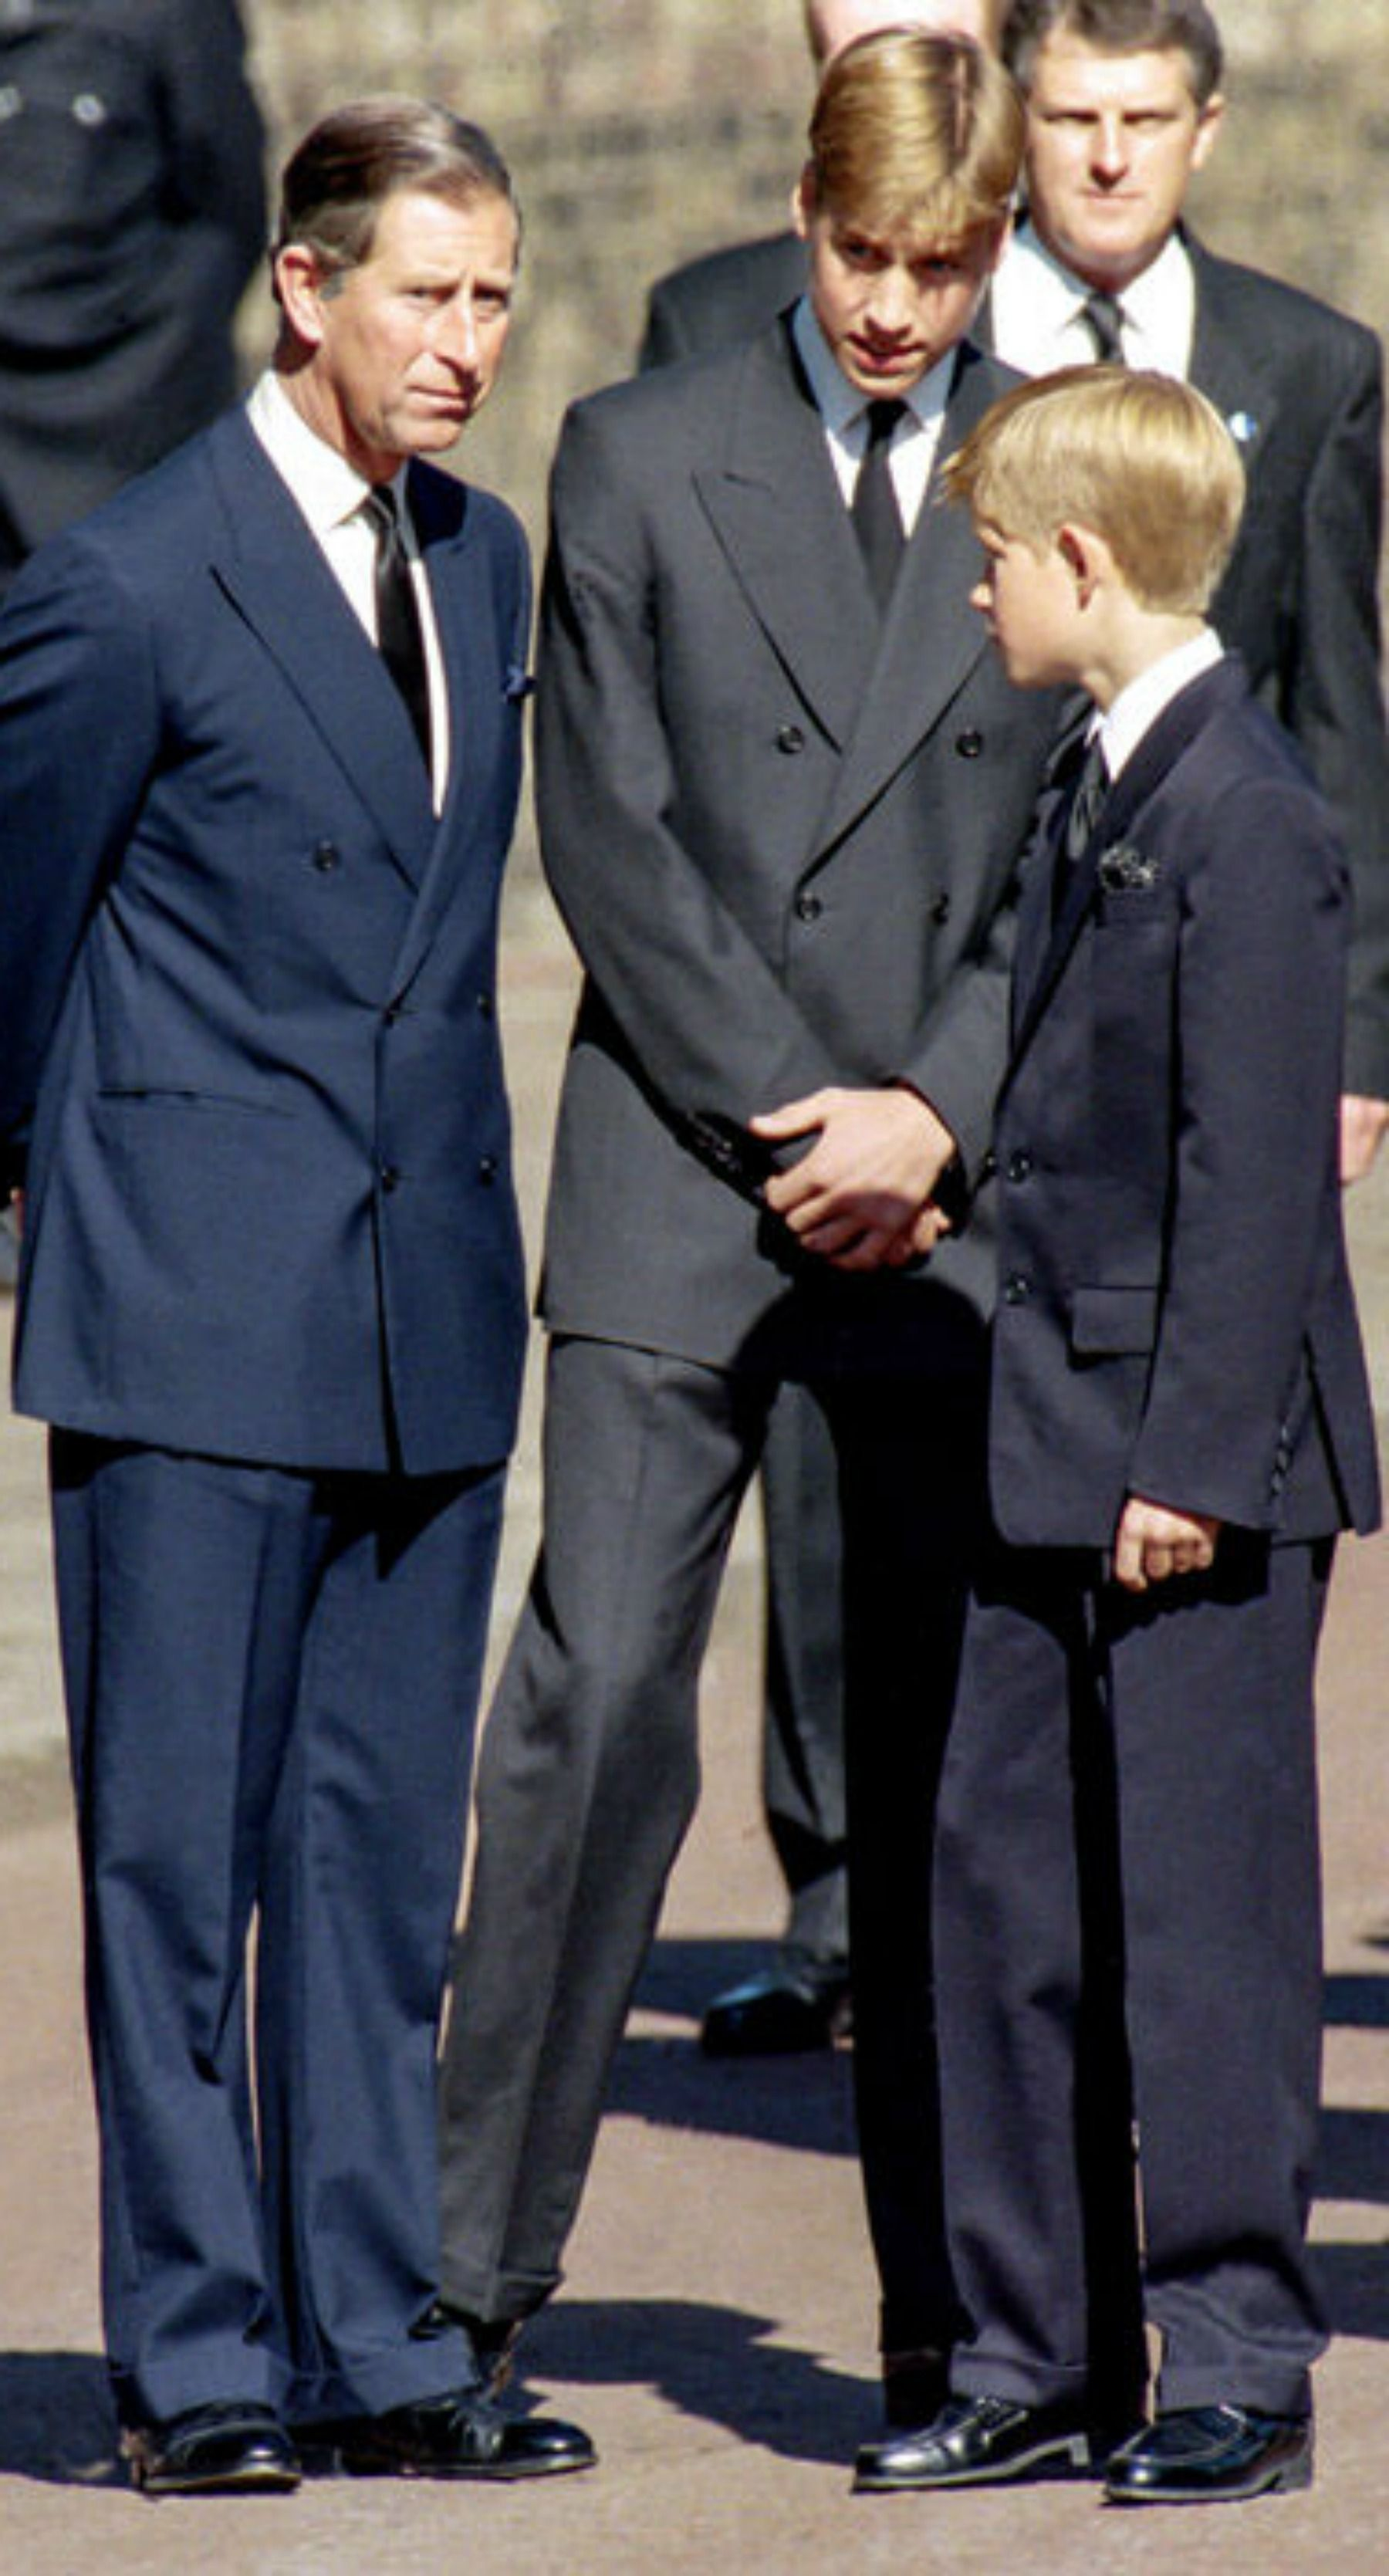 Charles, Prince of Wales, Prince William, and Prince Harry